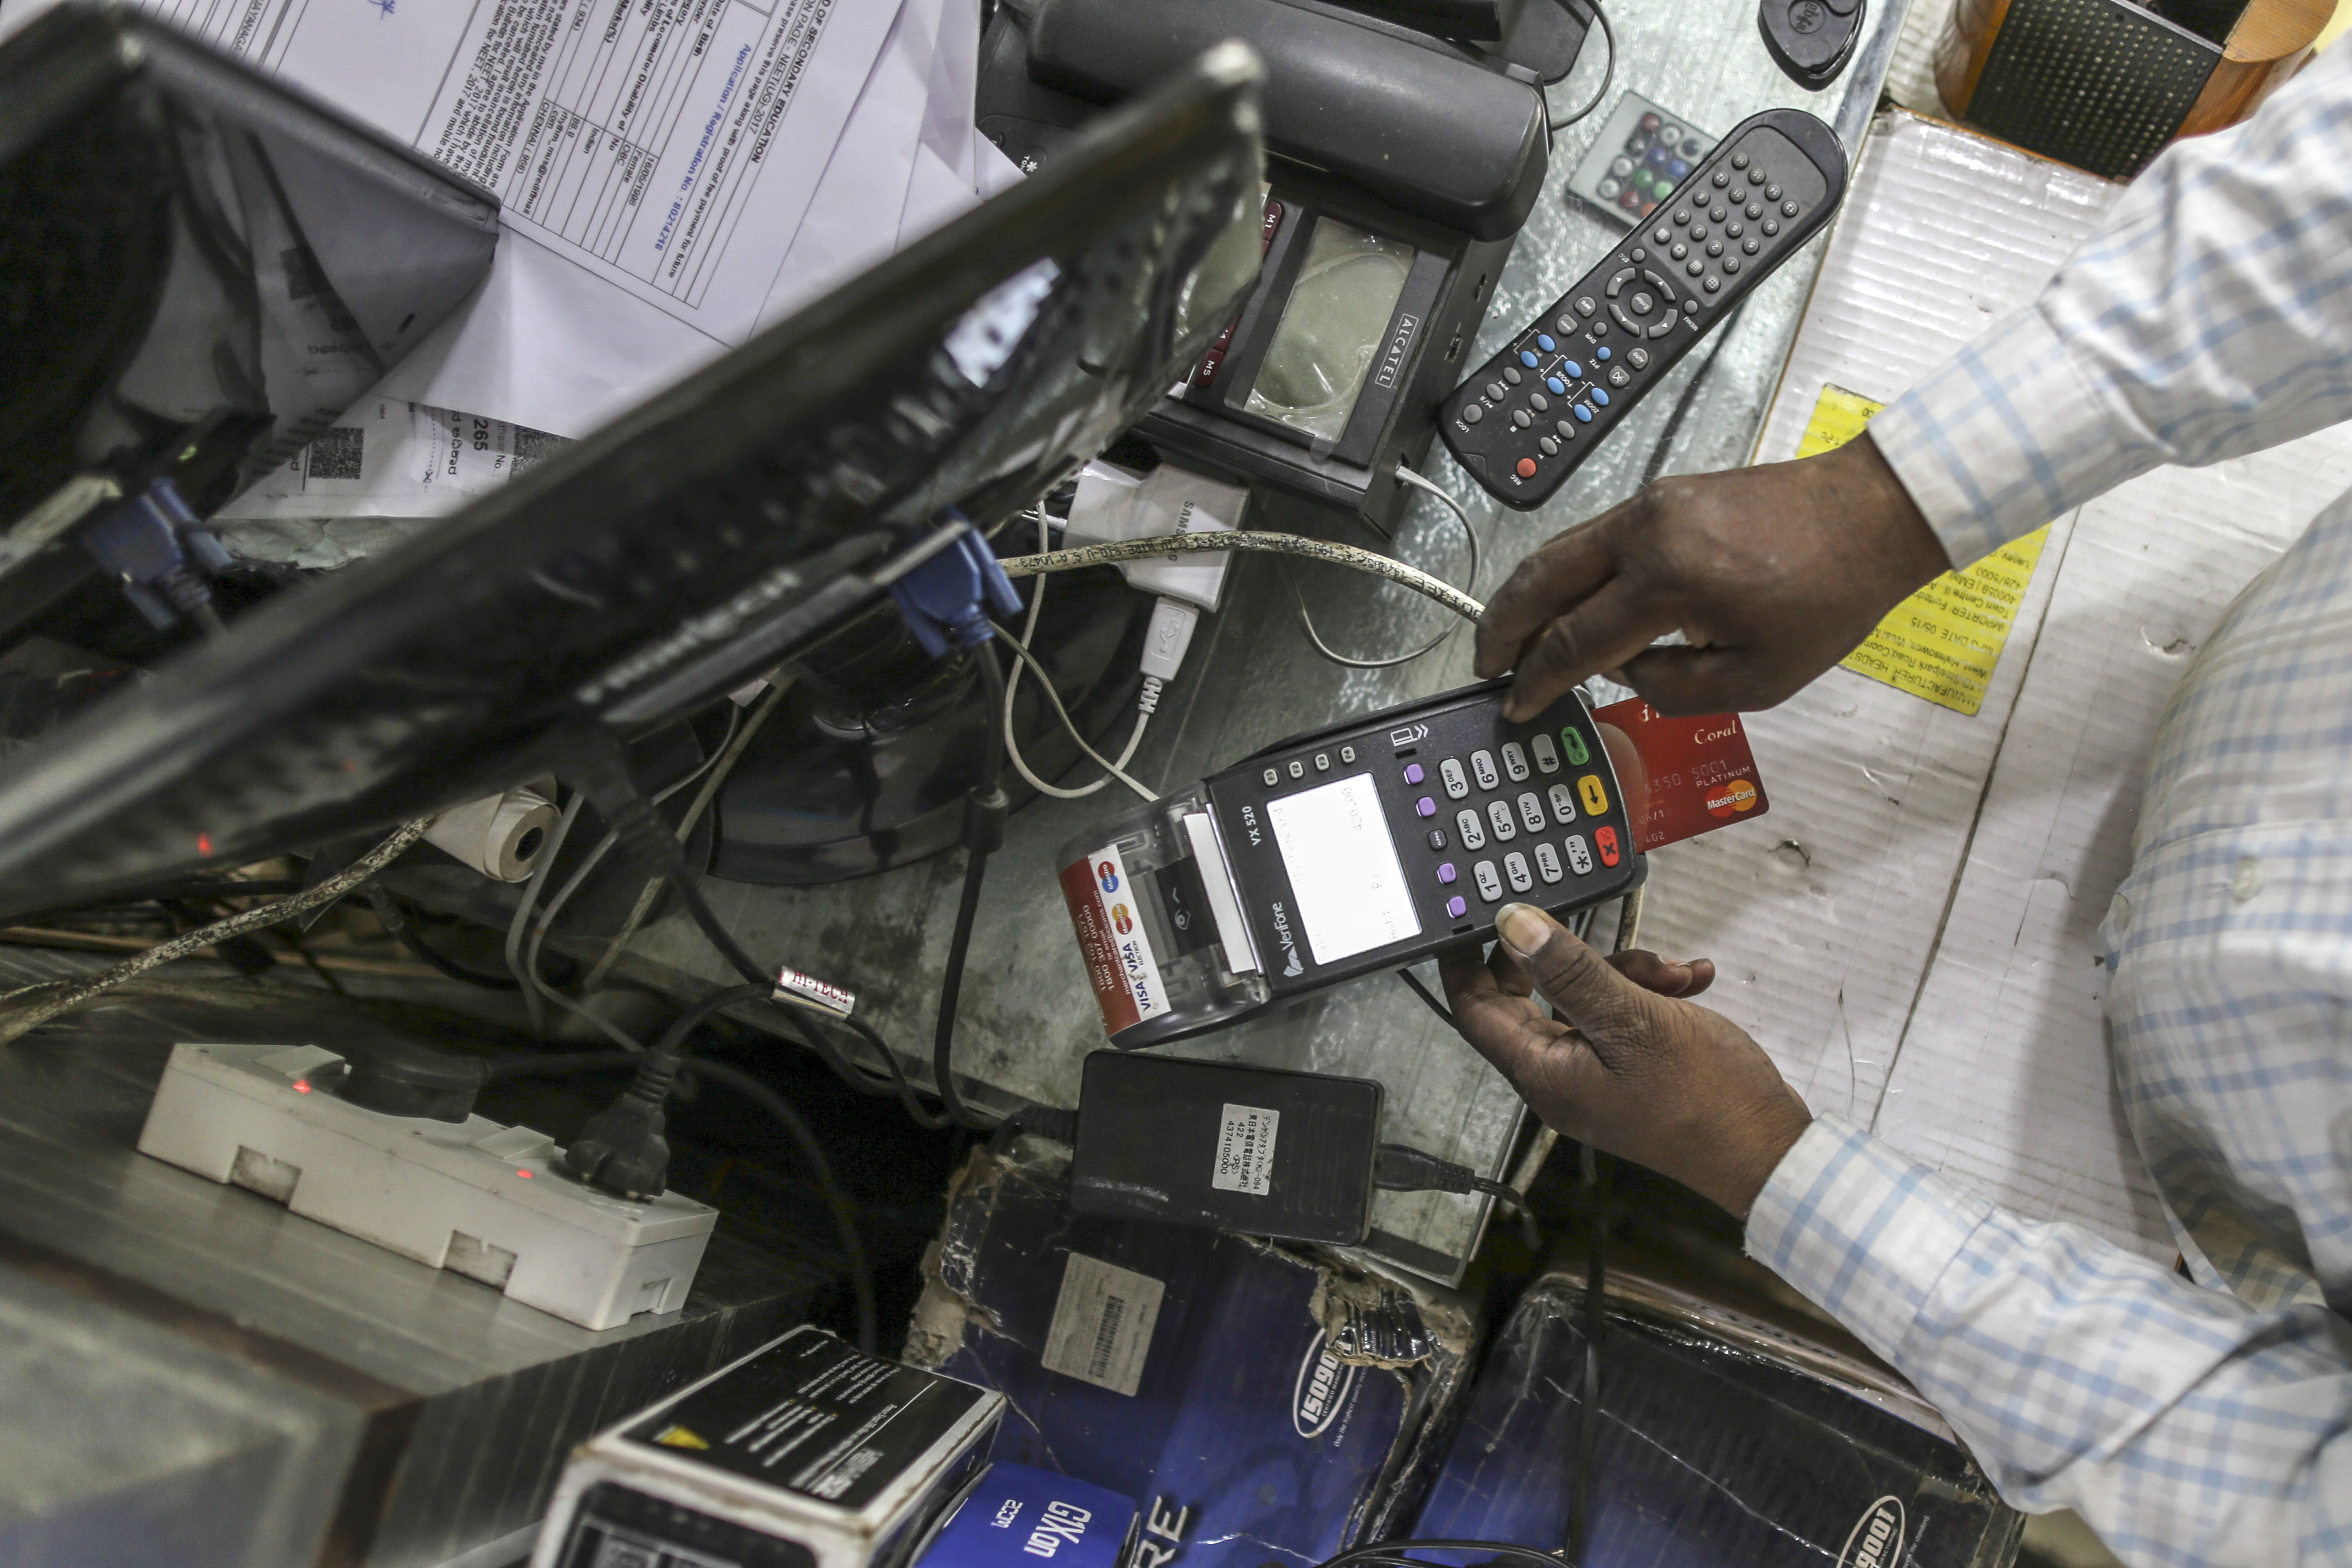 Digital Payment Imagery As Governments Push For E-Payments Continues